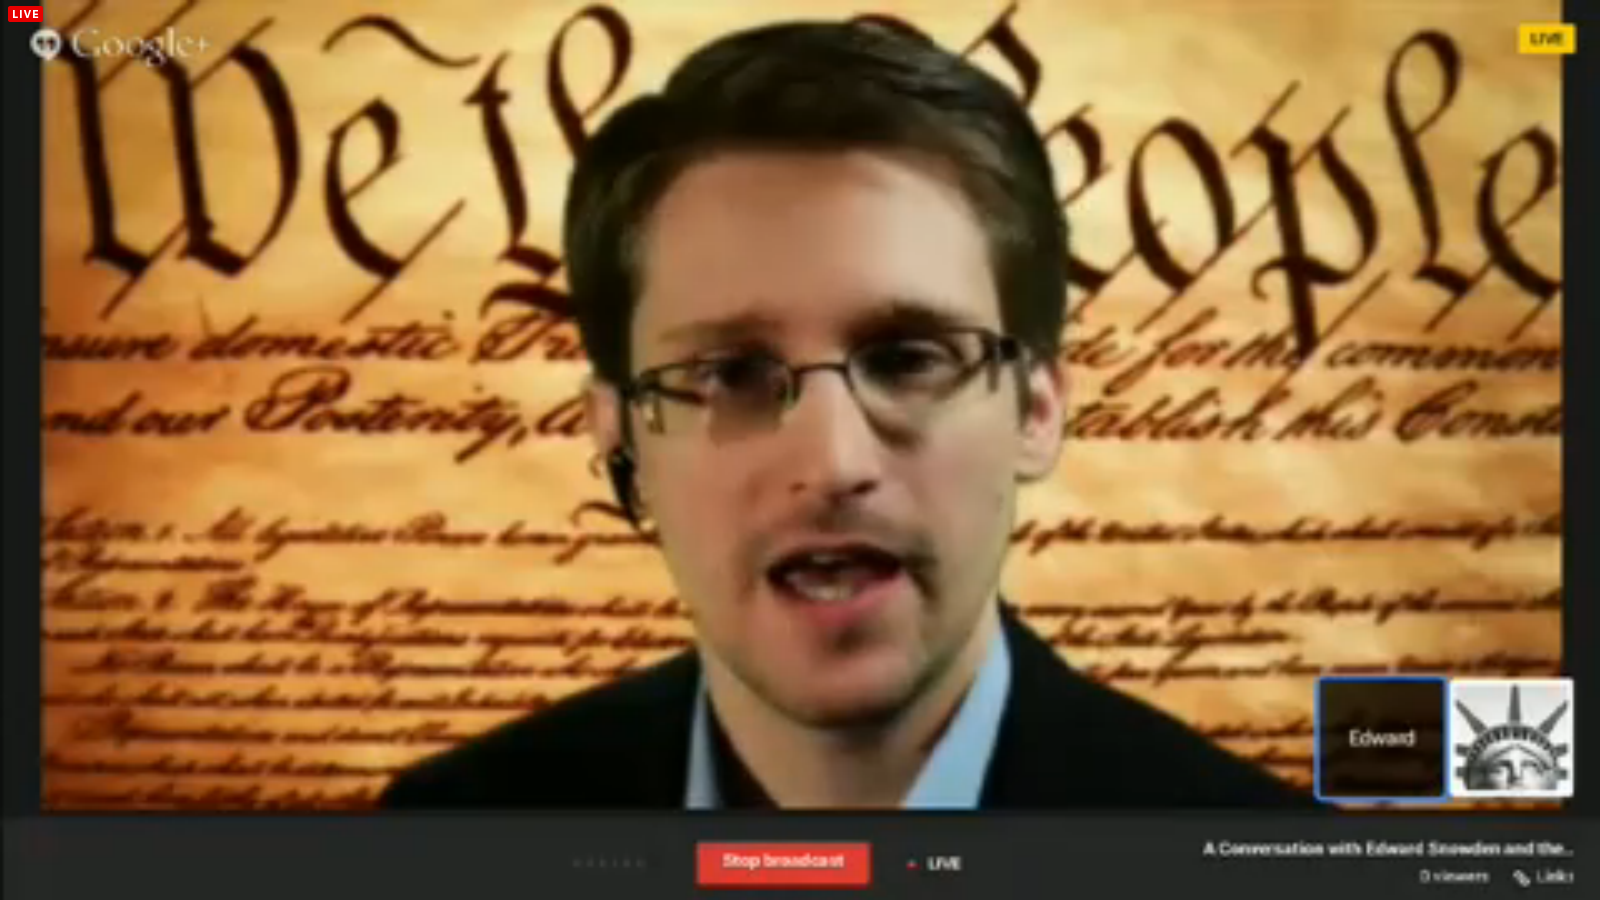 snowden-sxsw-screenshot.png